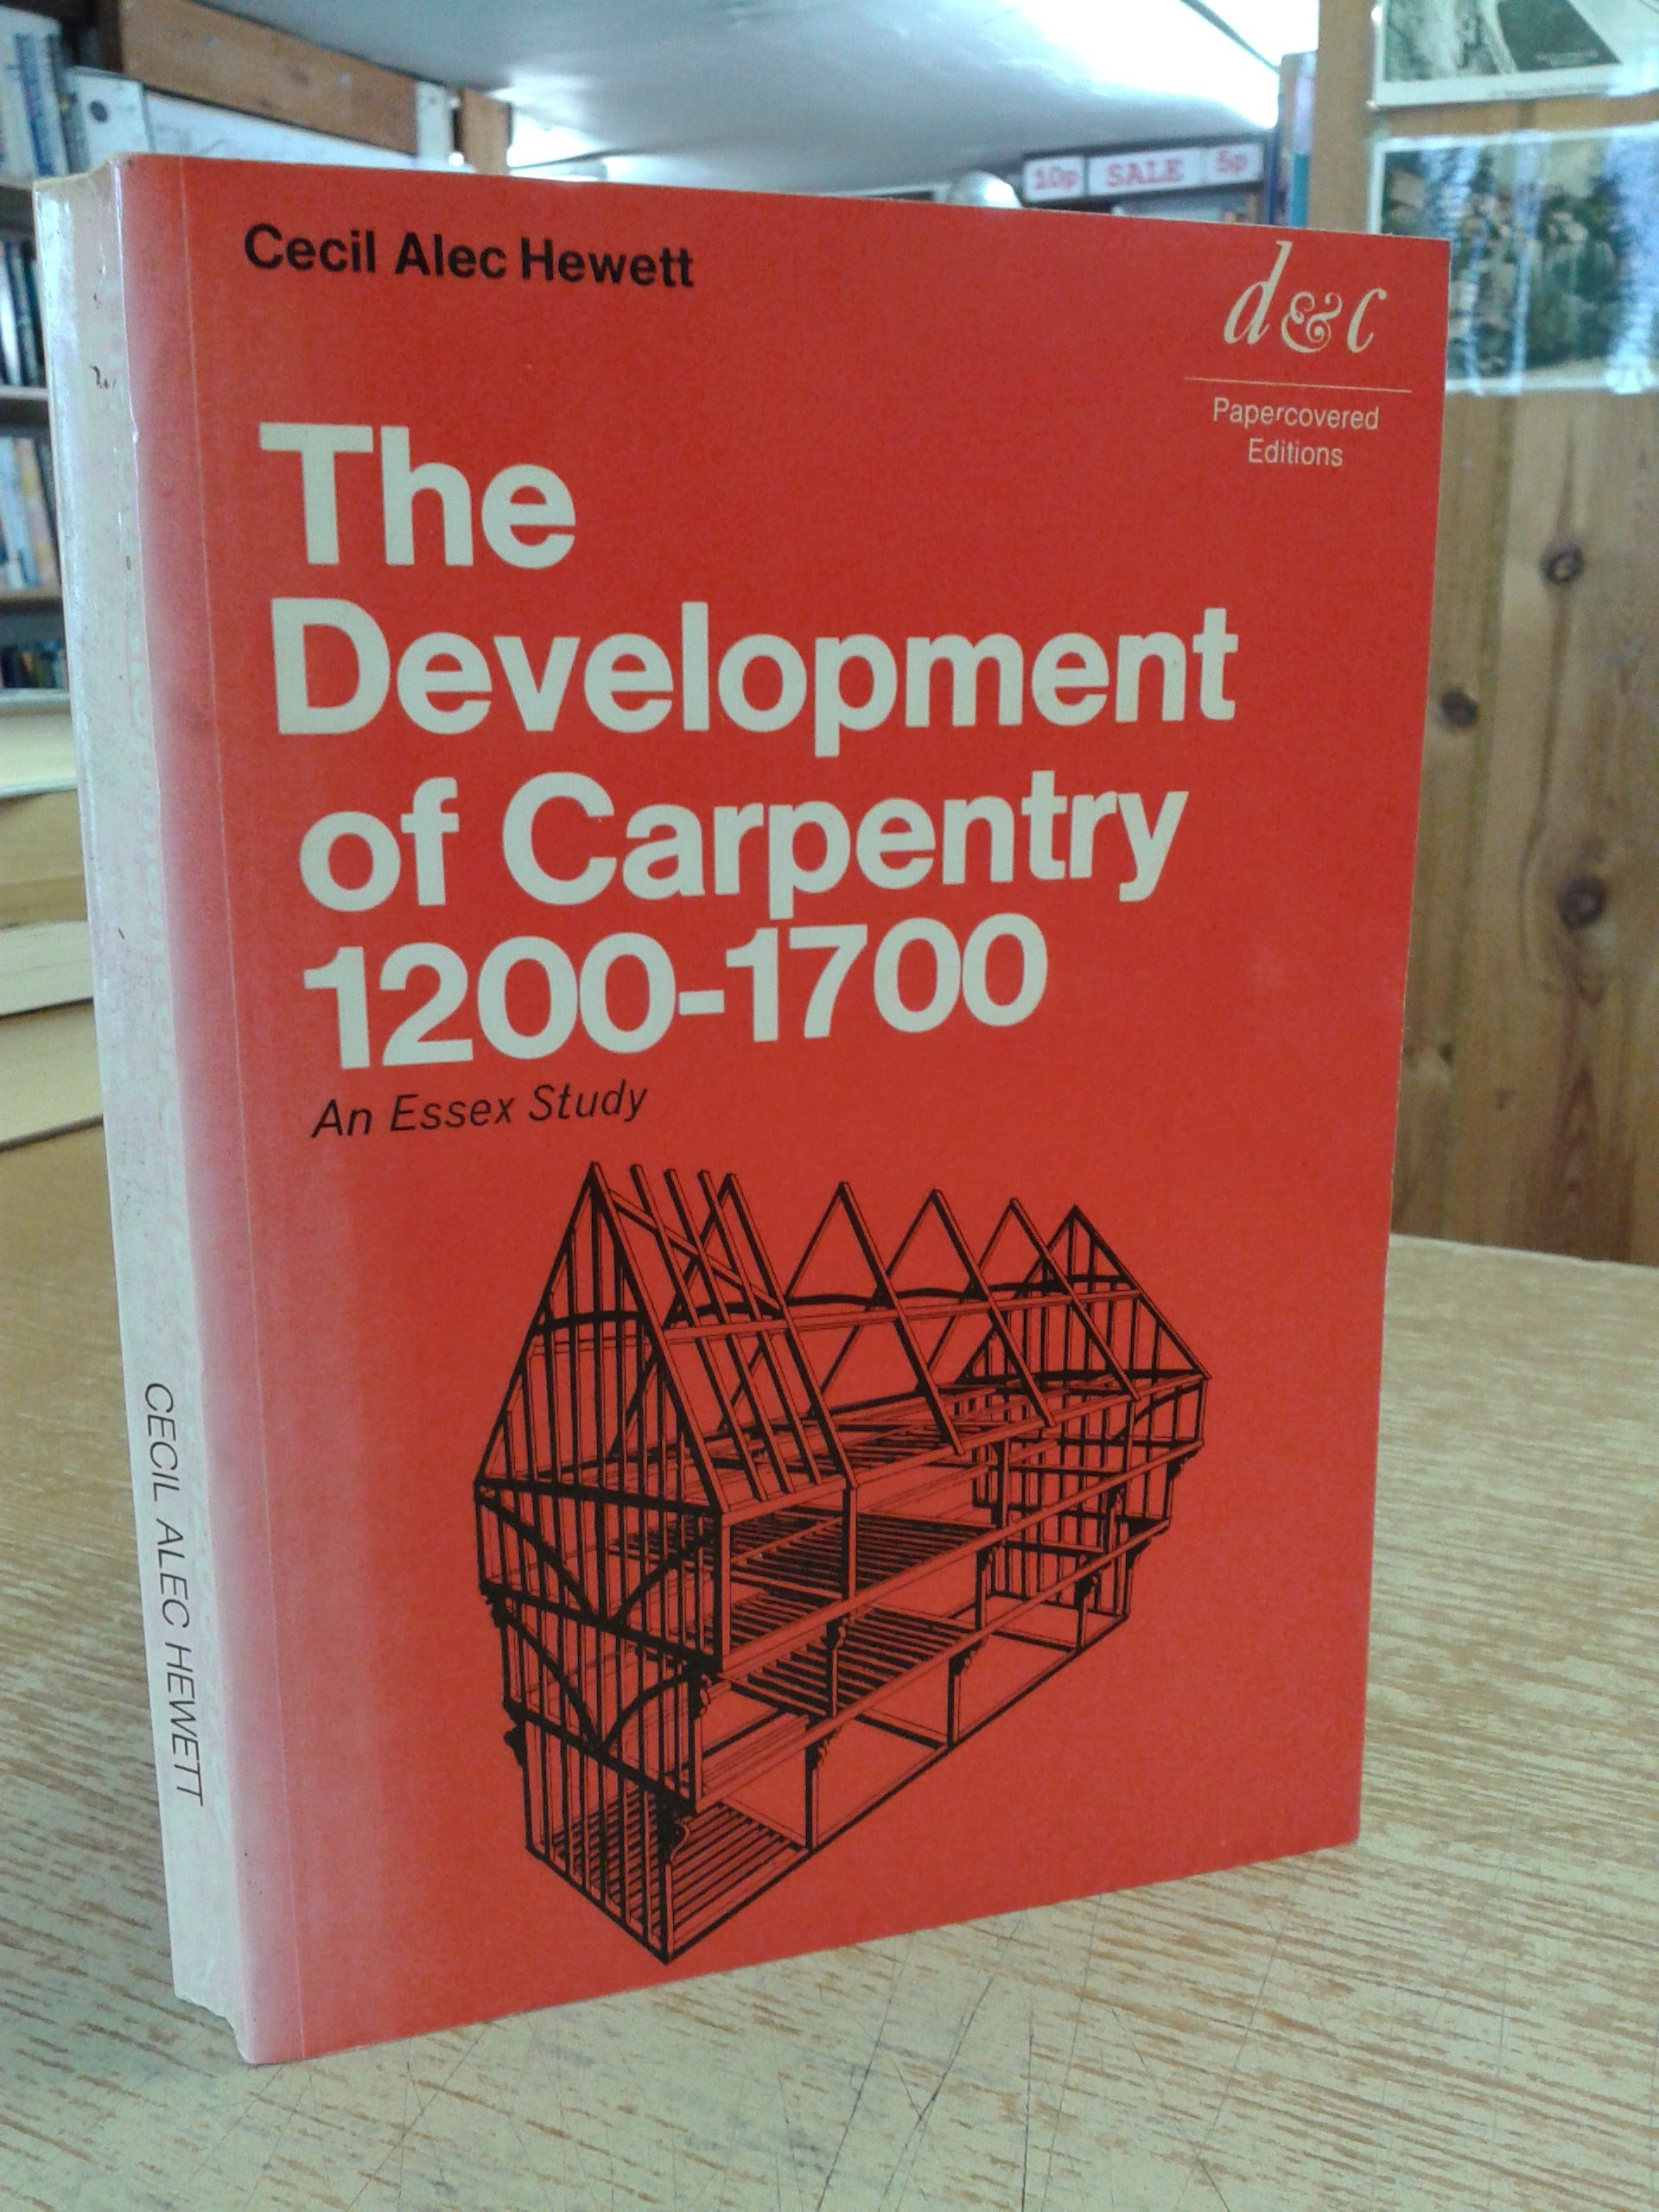 Development of Carpentry, 1200-1700: An Essex Study